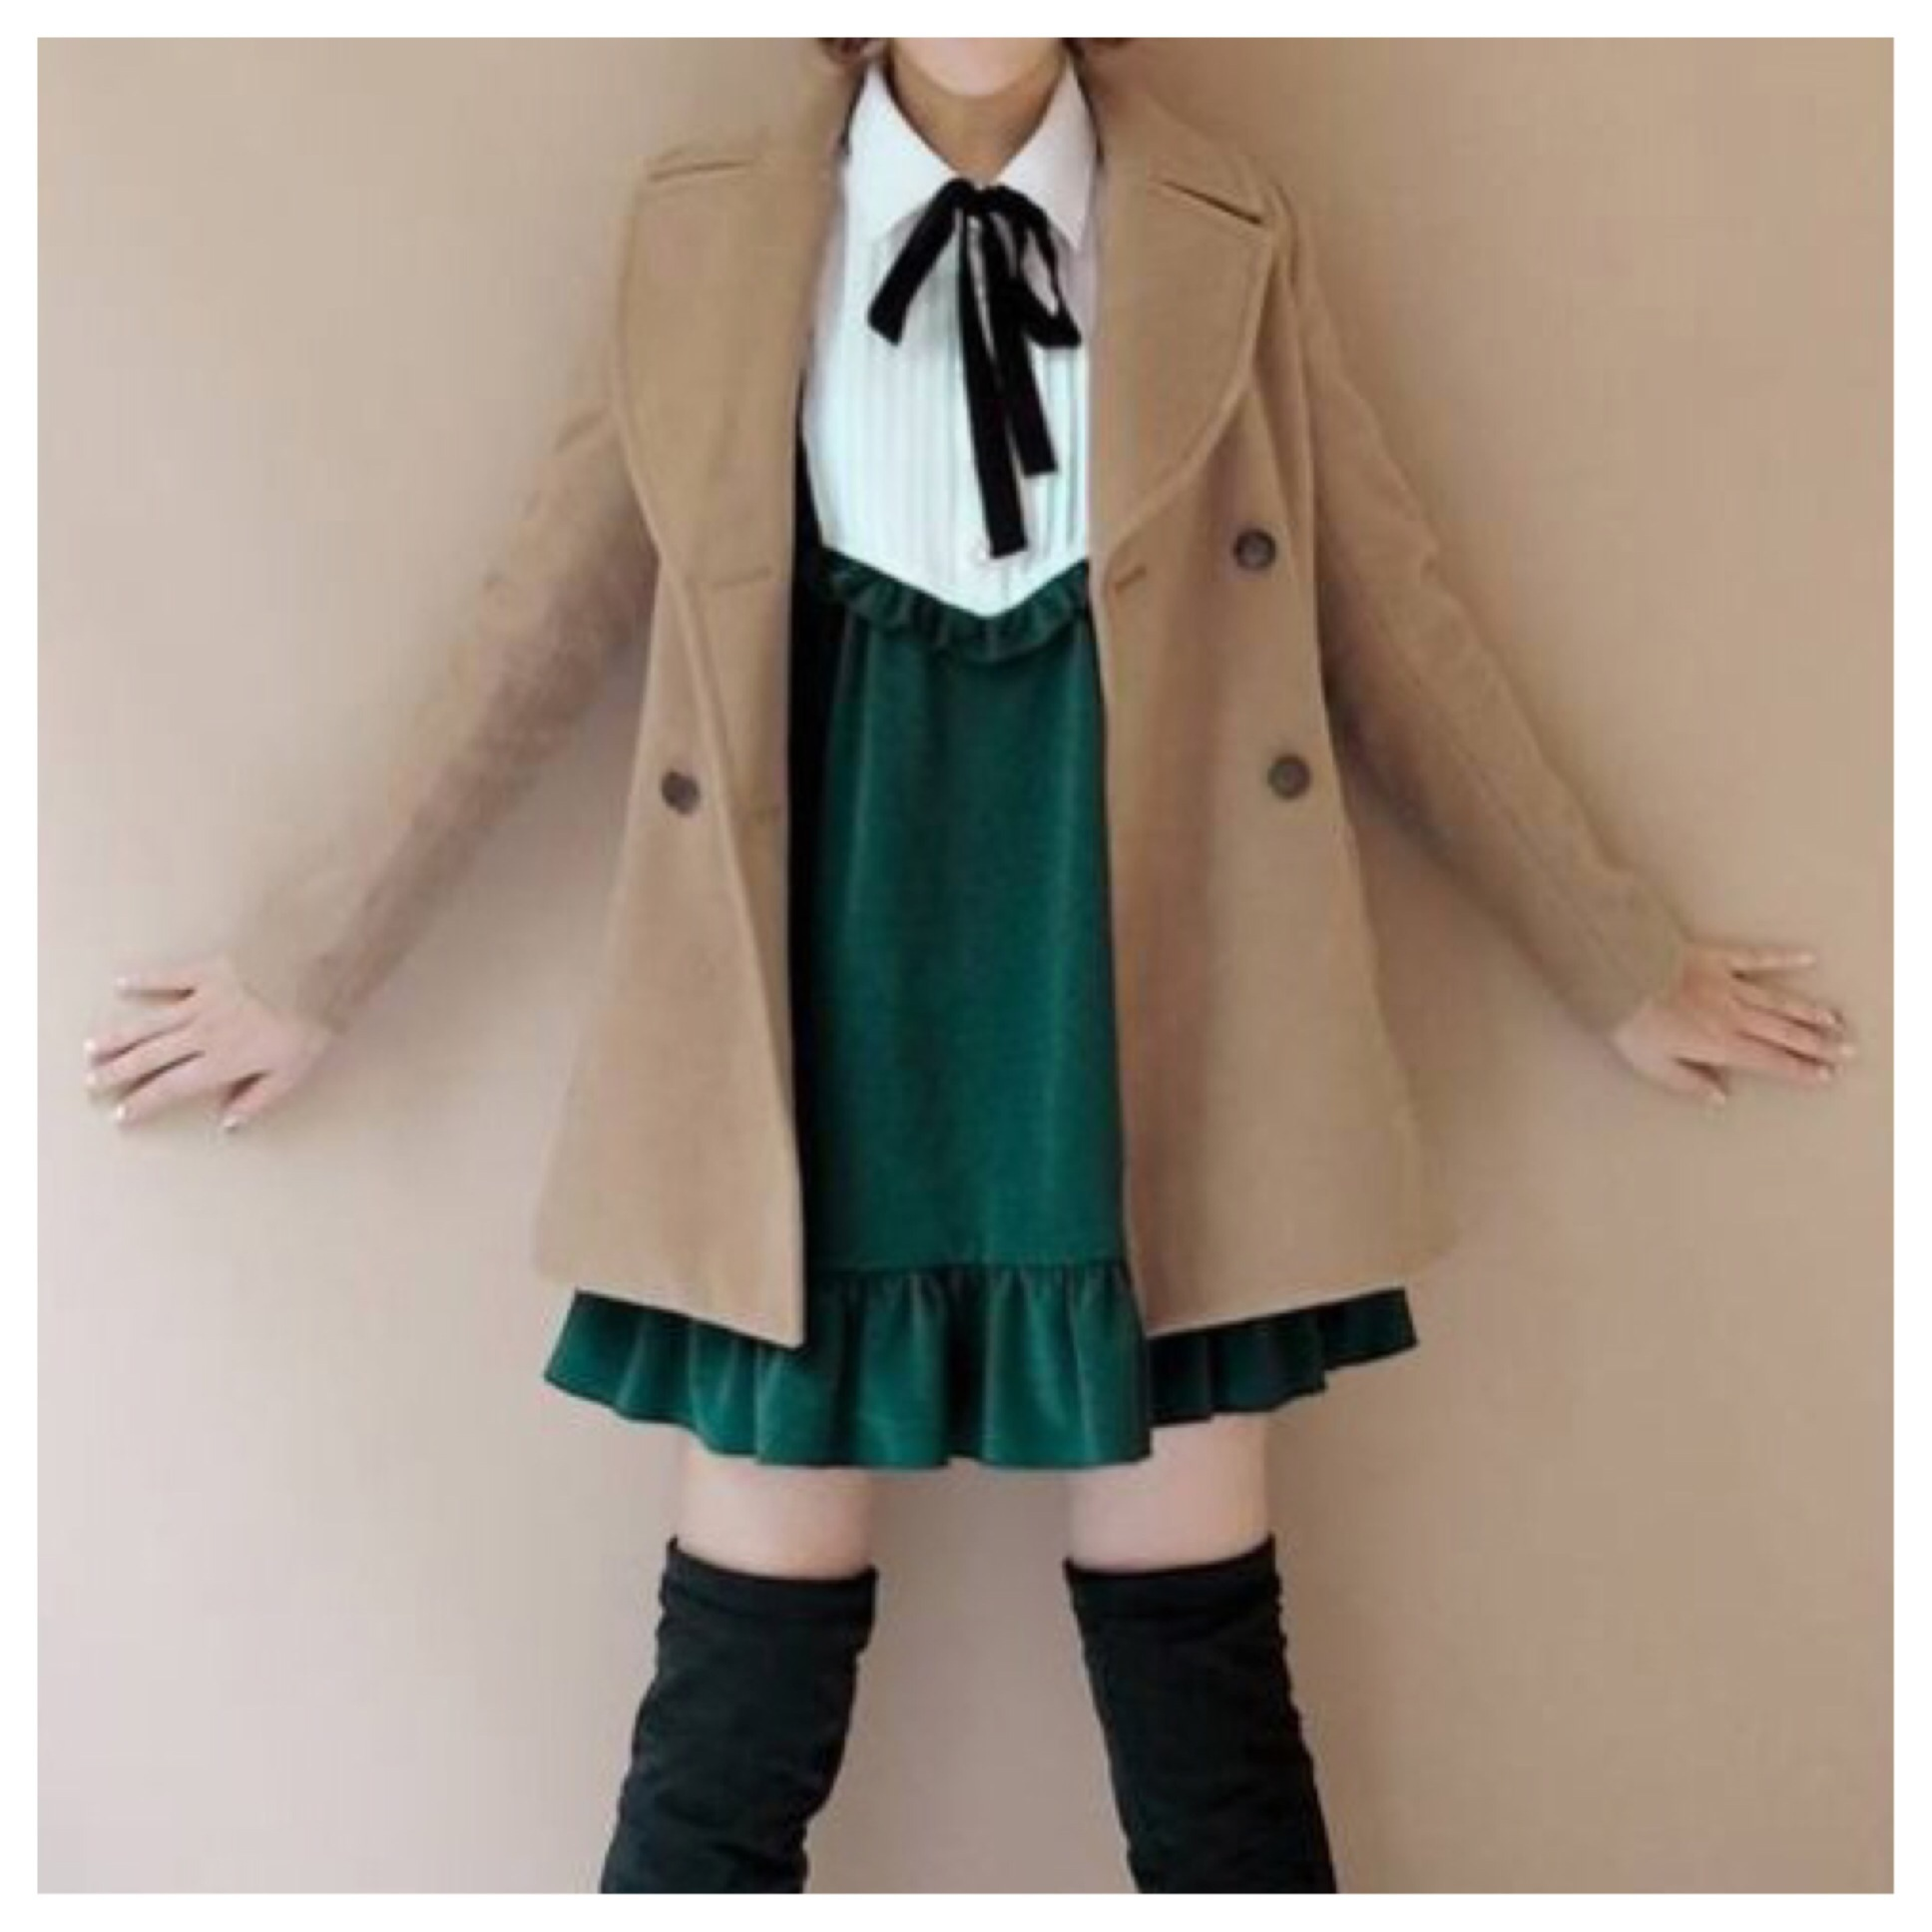 Free shipping! cute turn collar wool jacket from doublelw on storenvy